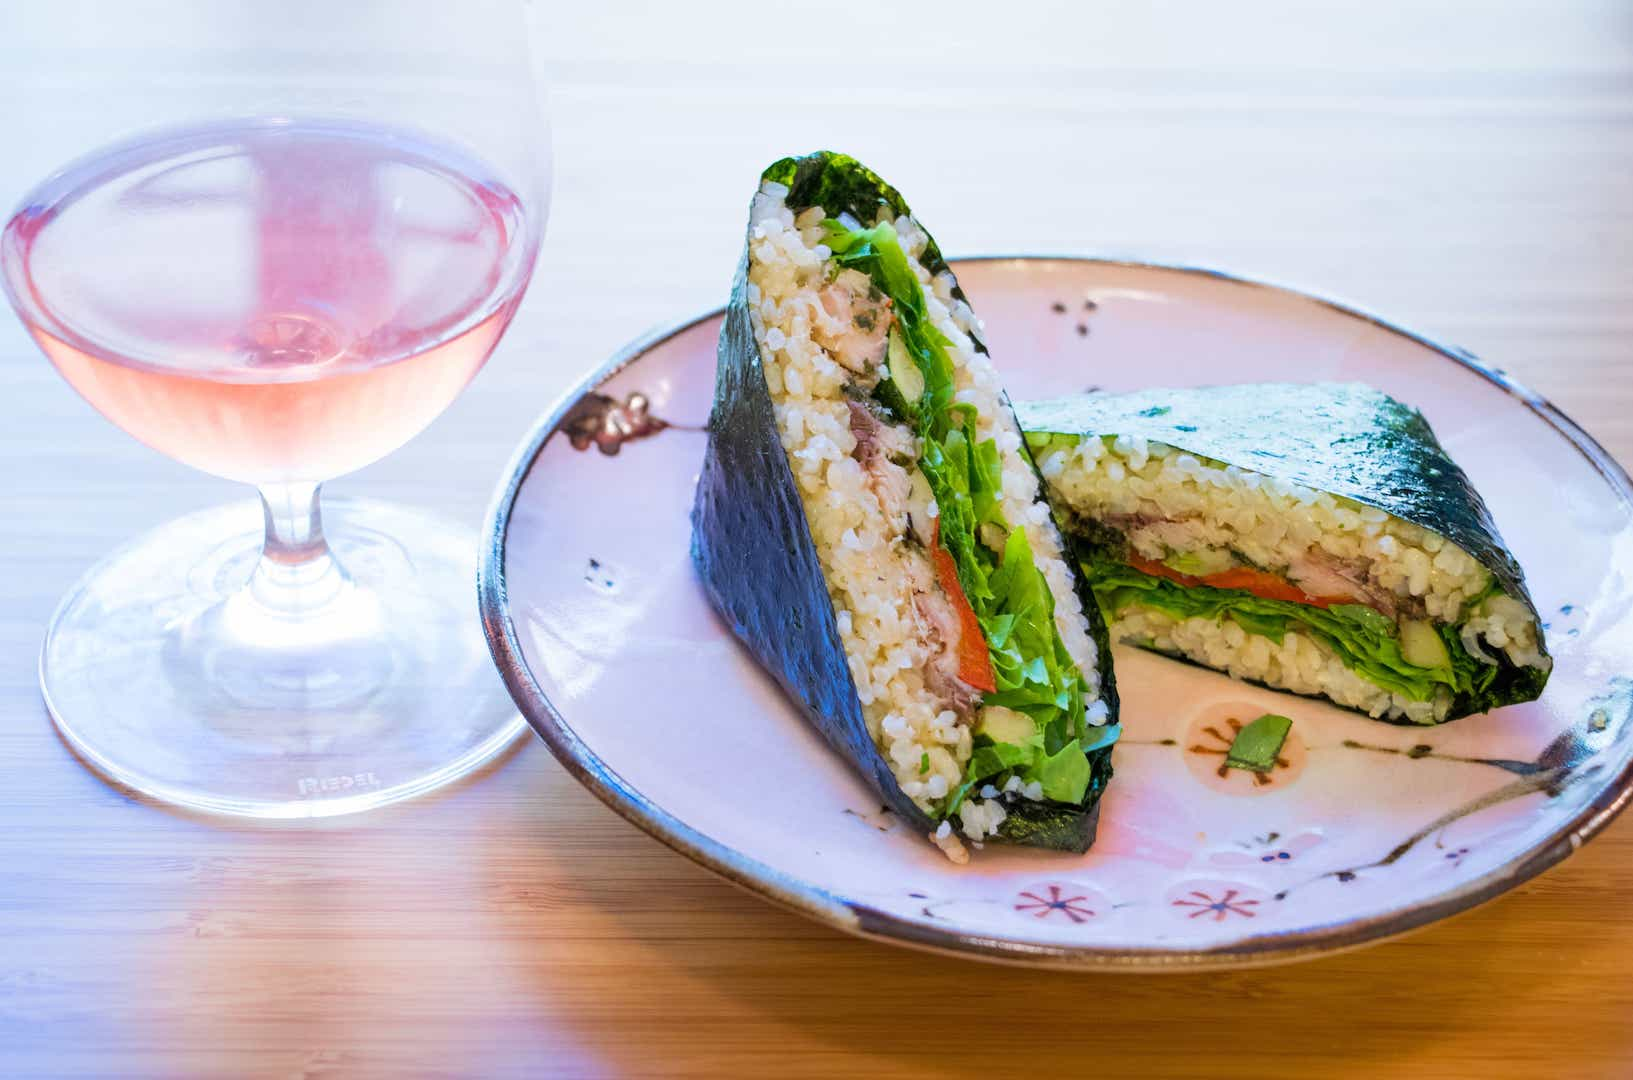 Willamette Valley rose with onigirazu (nori, brown rice, canned sardines, grilled zucchini and peppers, lettuce, shiso, and shoyu-balsamic vinaigrette). There are no rules.